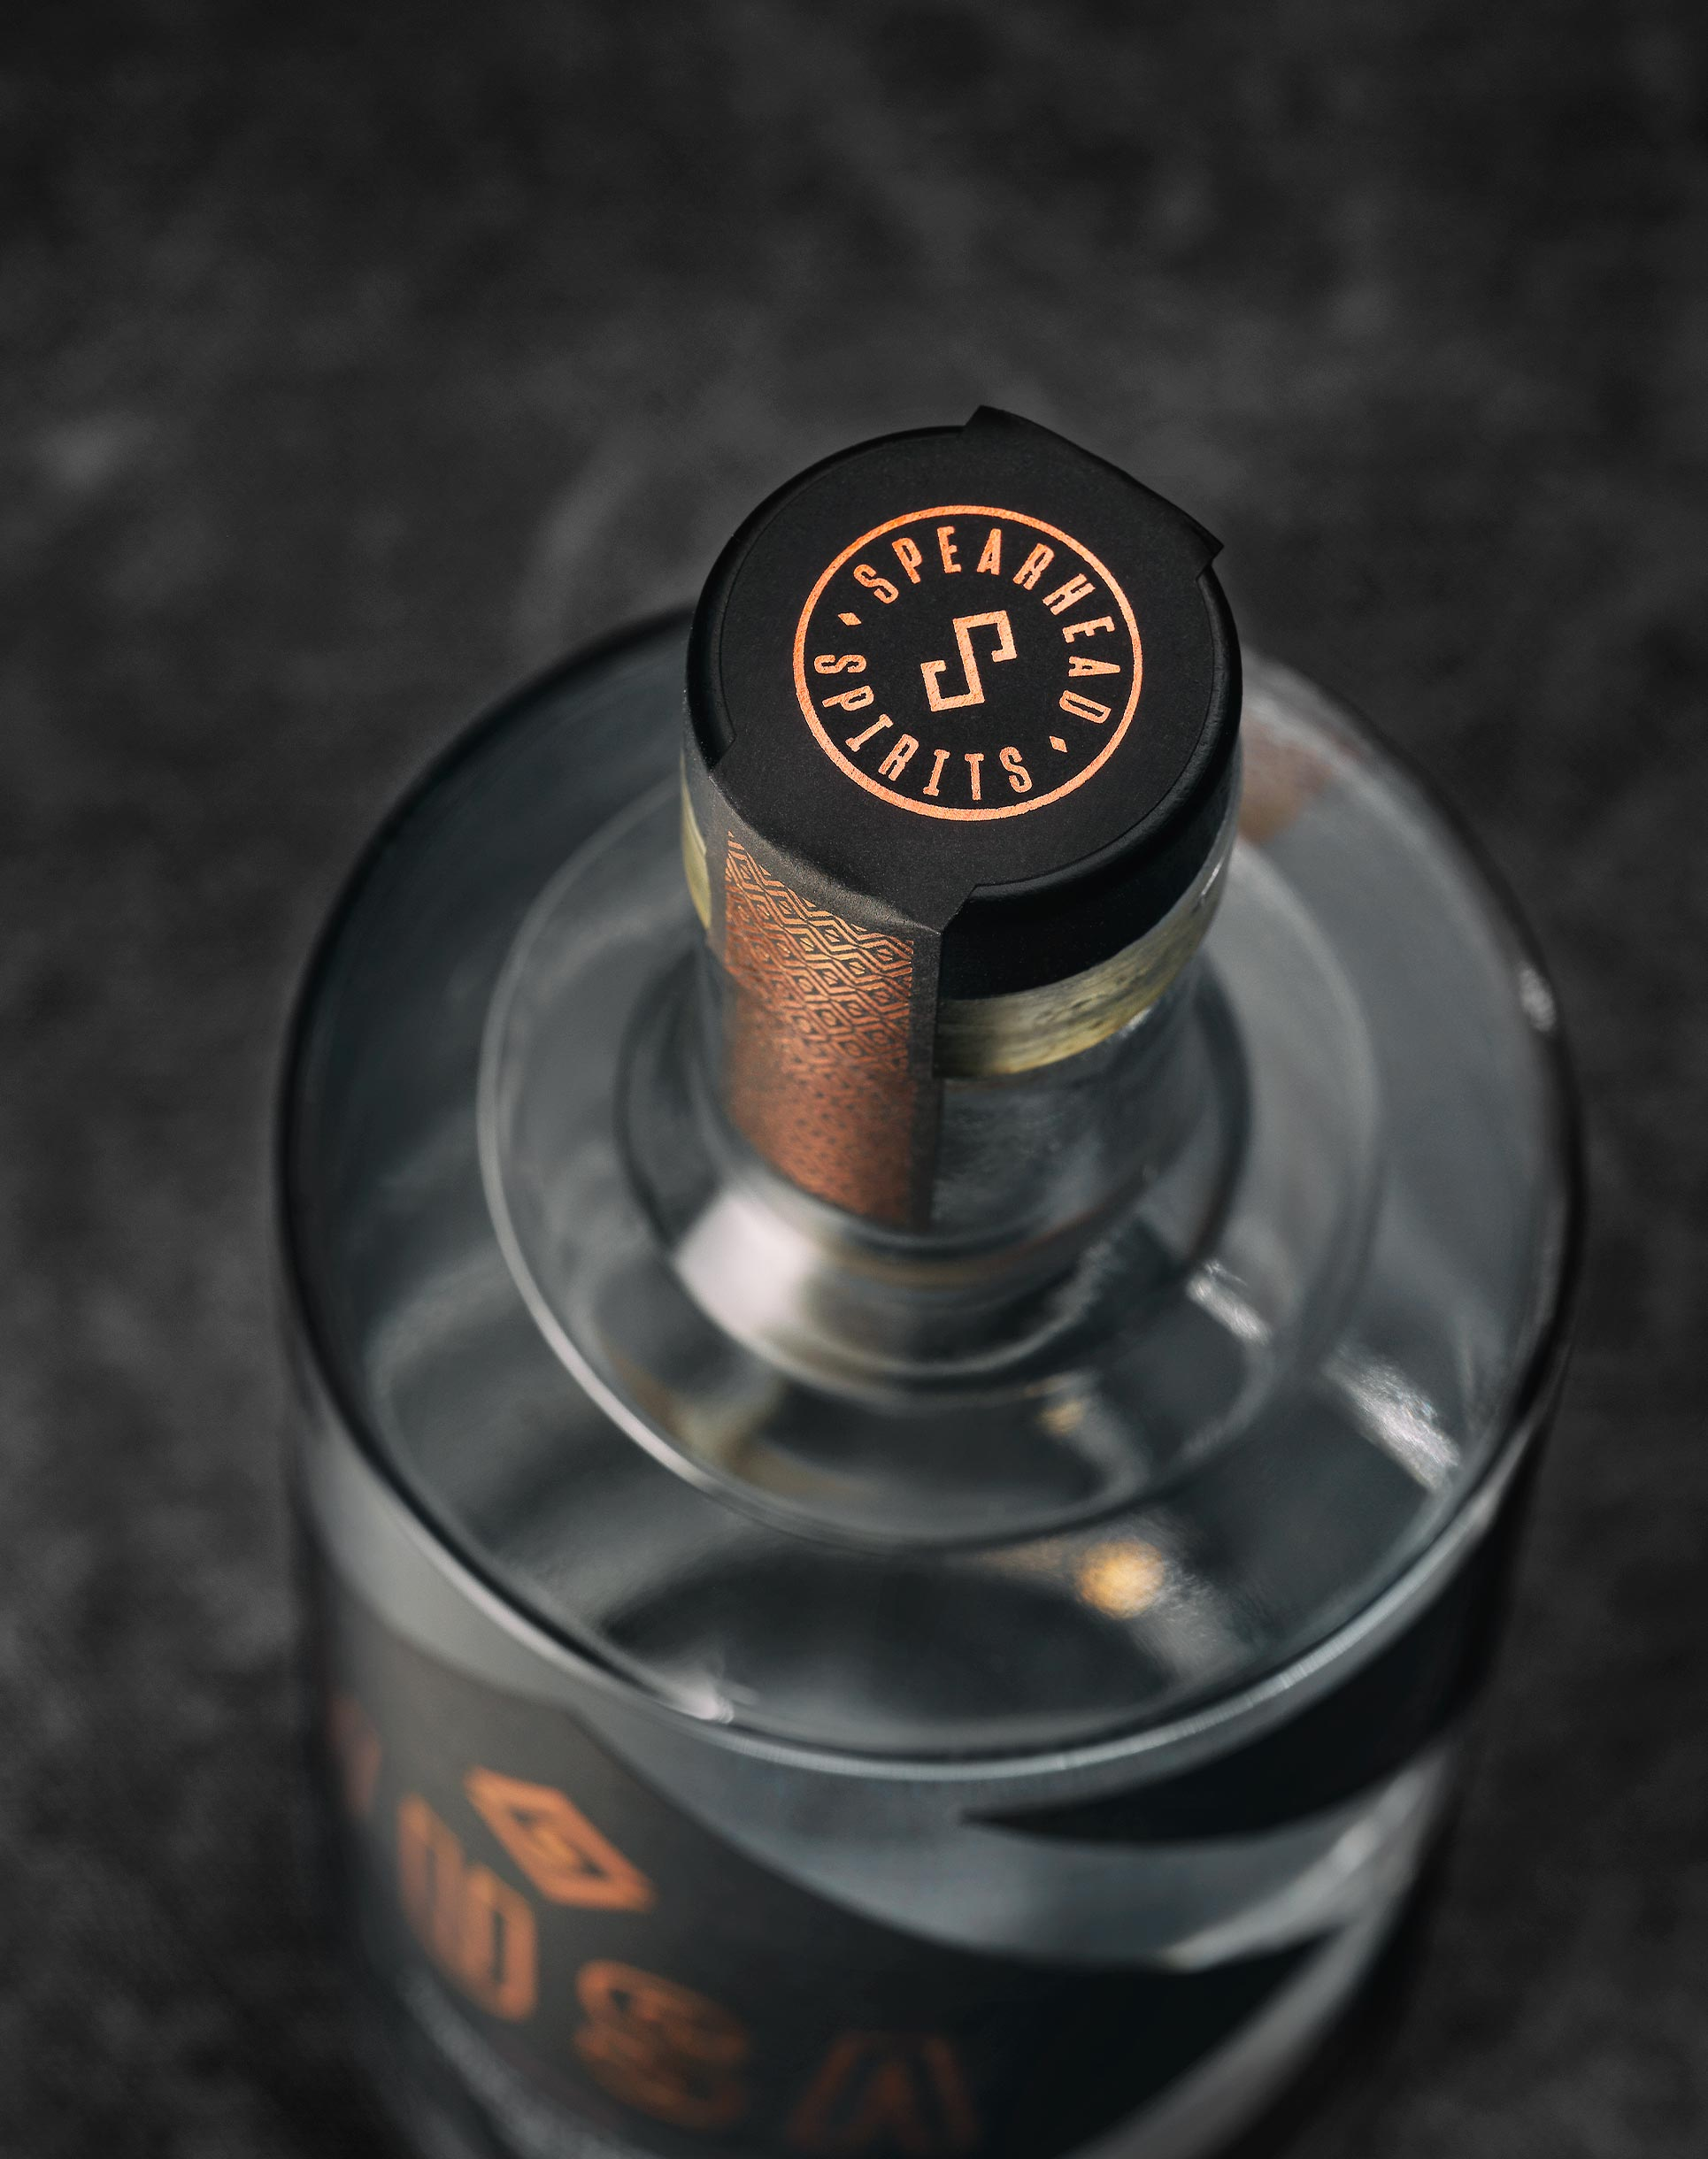 Top view of bottle